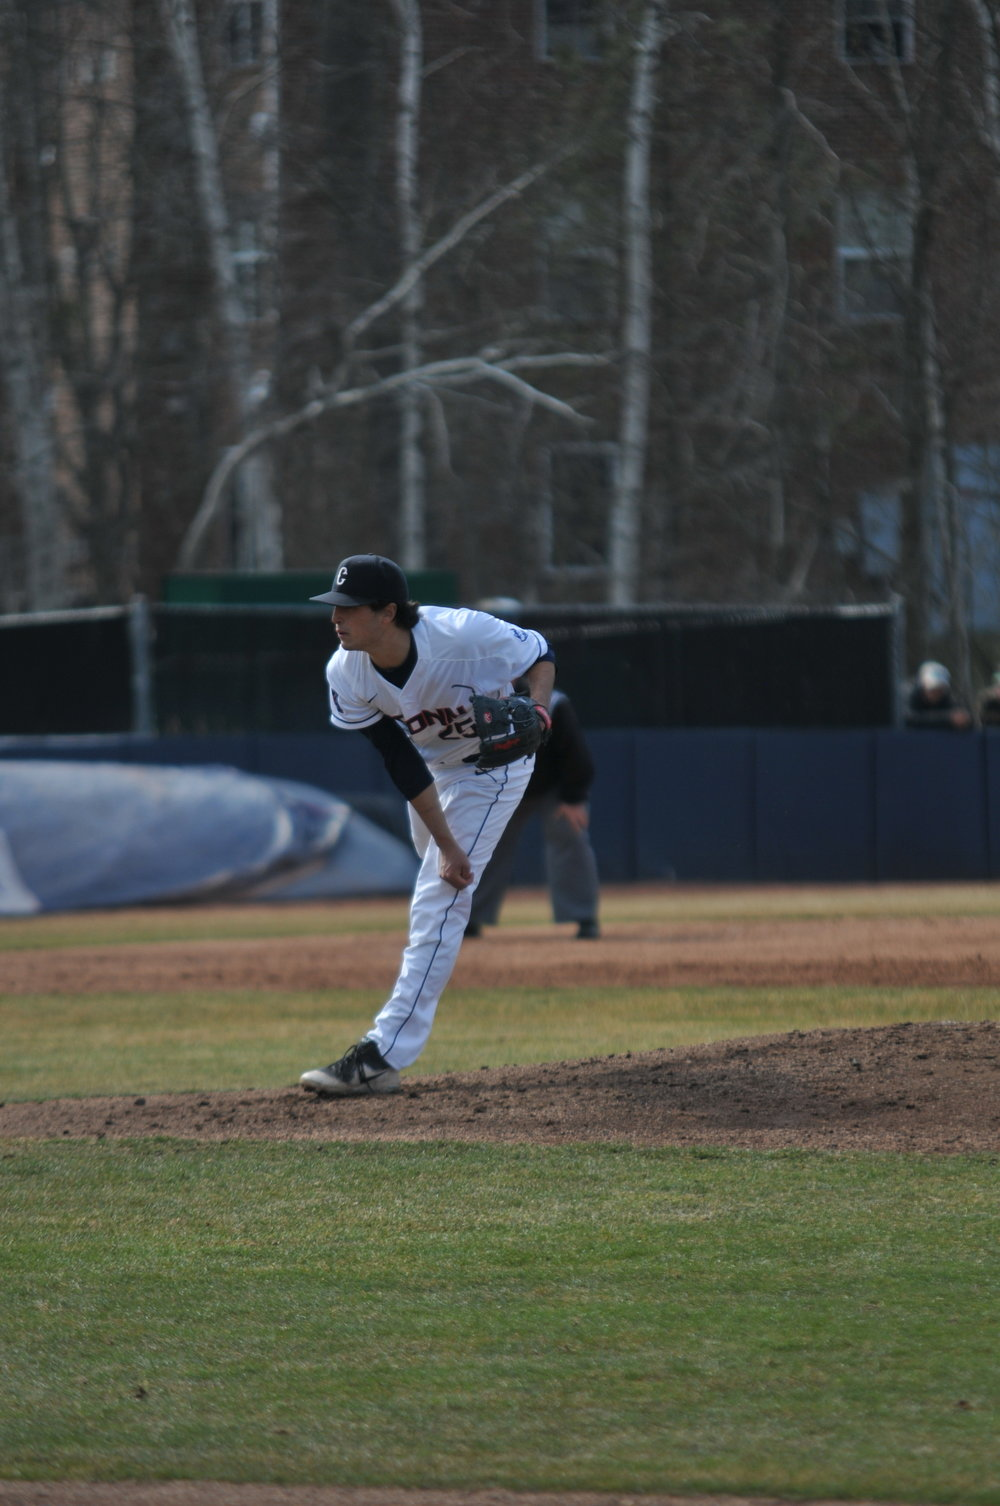 The Huskies opened conference play with a great performance in Houston with a series win. (Eric Wang/The Daily Campus)